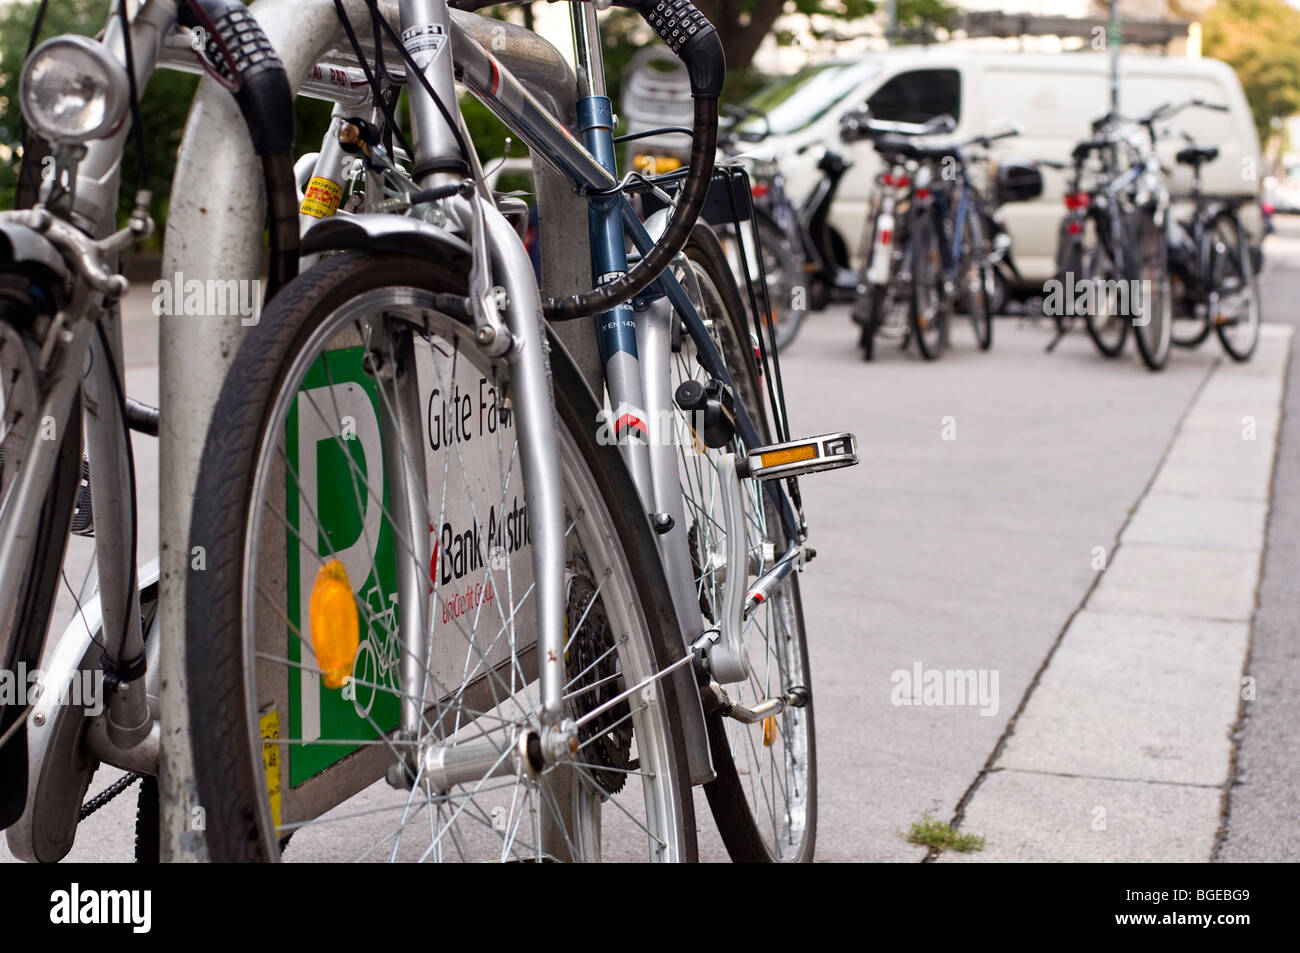 Bicycles in Vienna, Austria - Stock Image